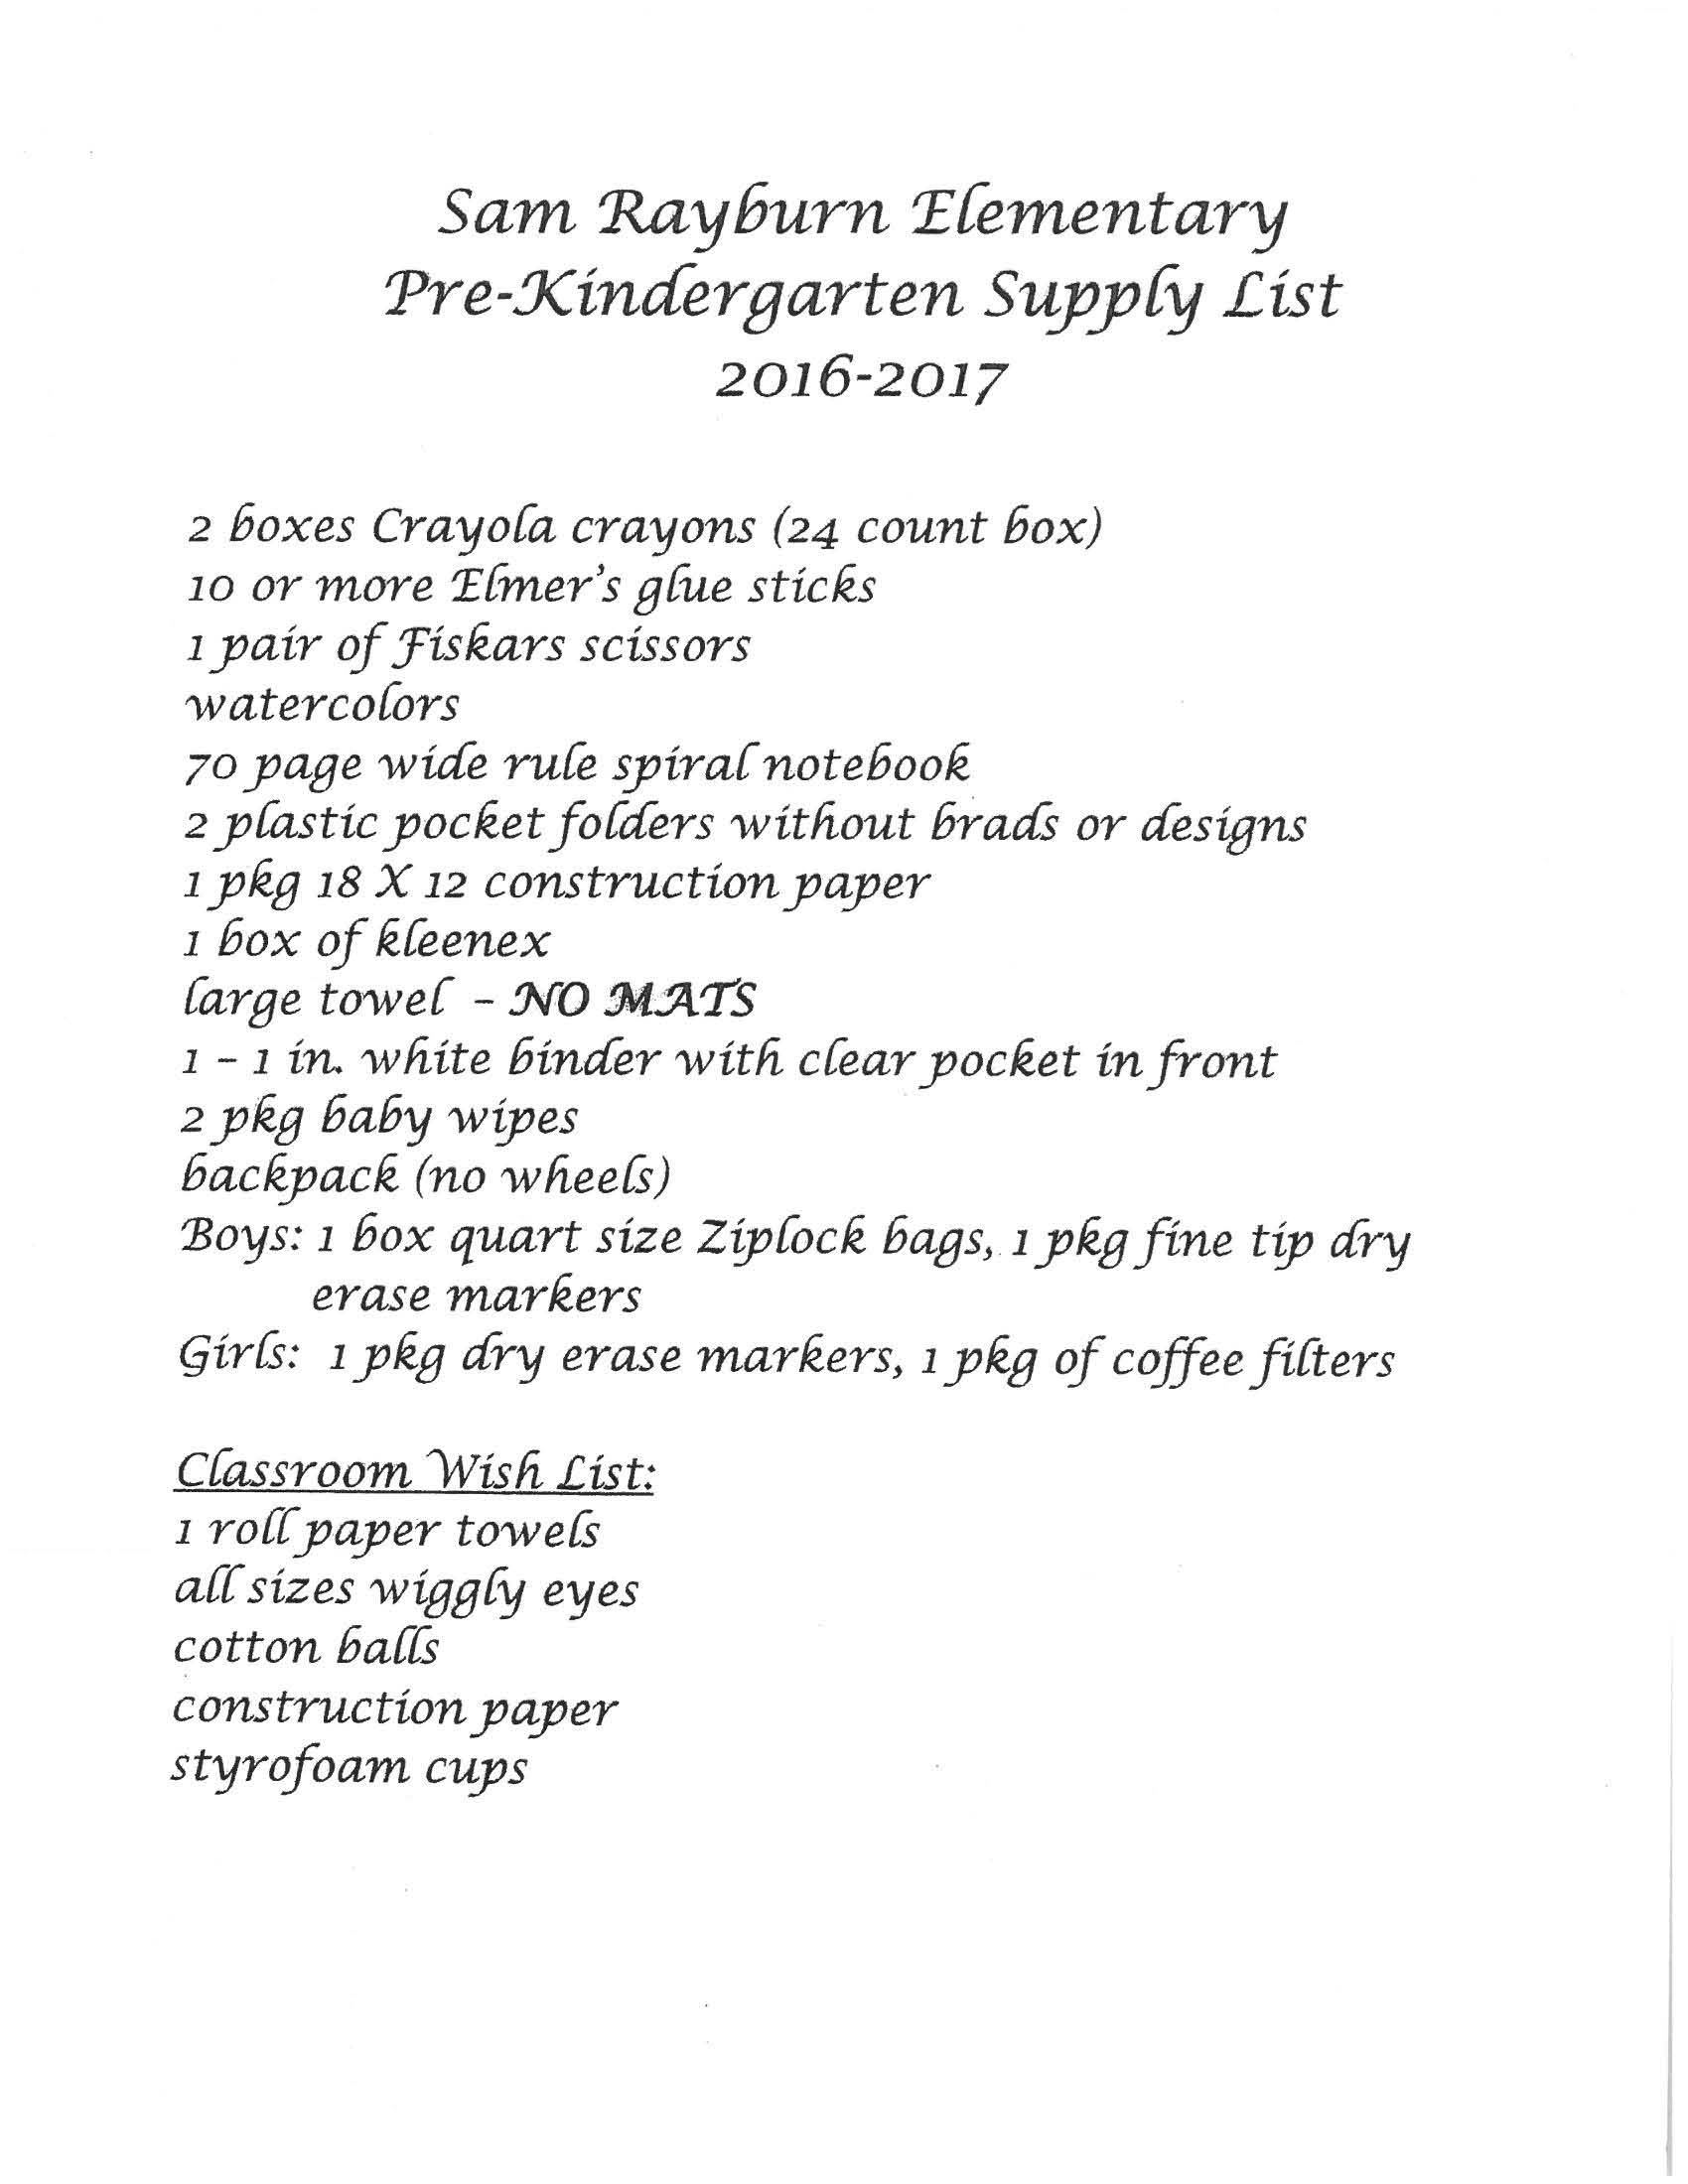 Supply List for Pre-Kindergarten 2016-2017